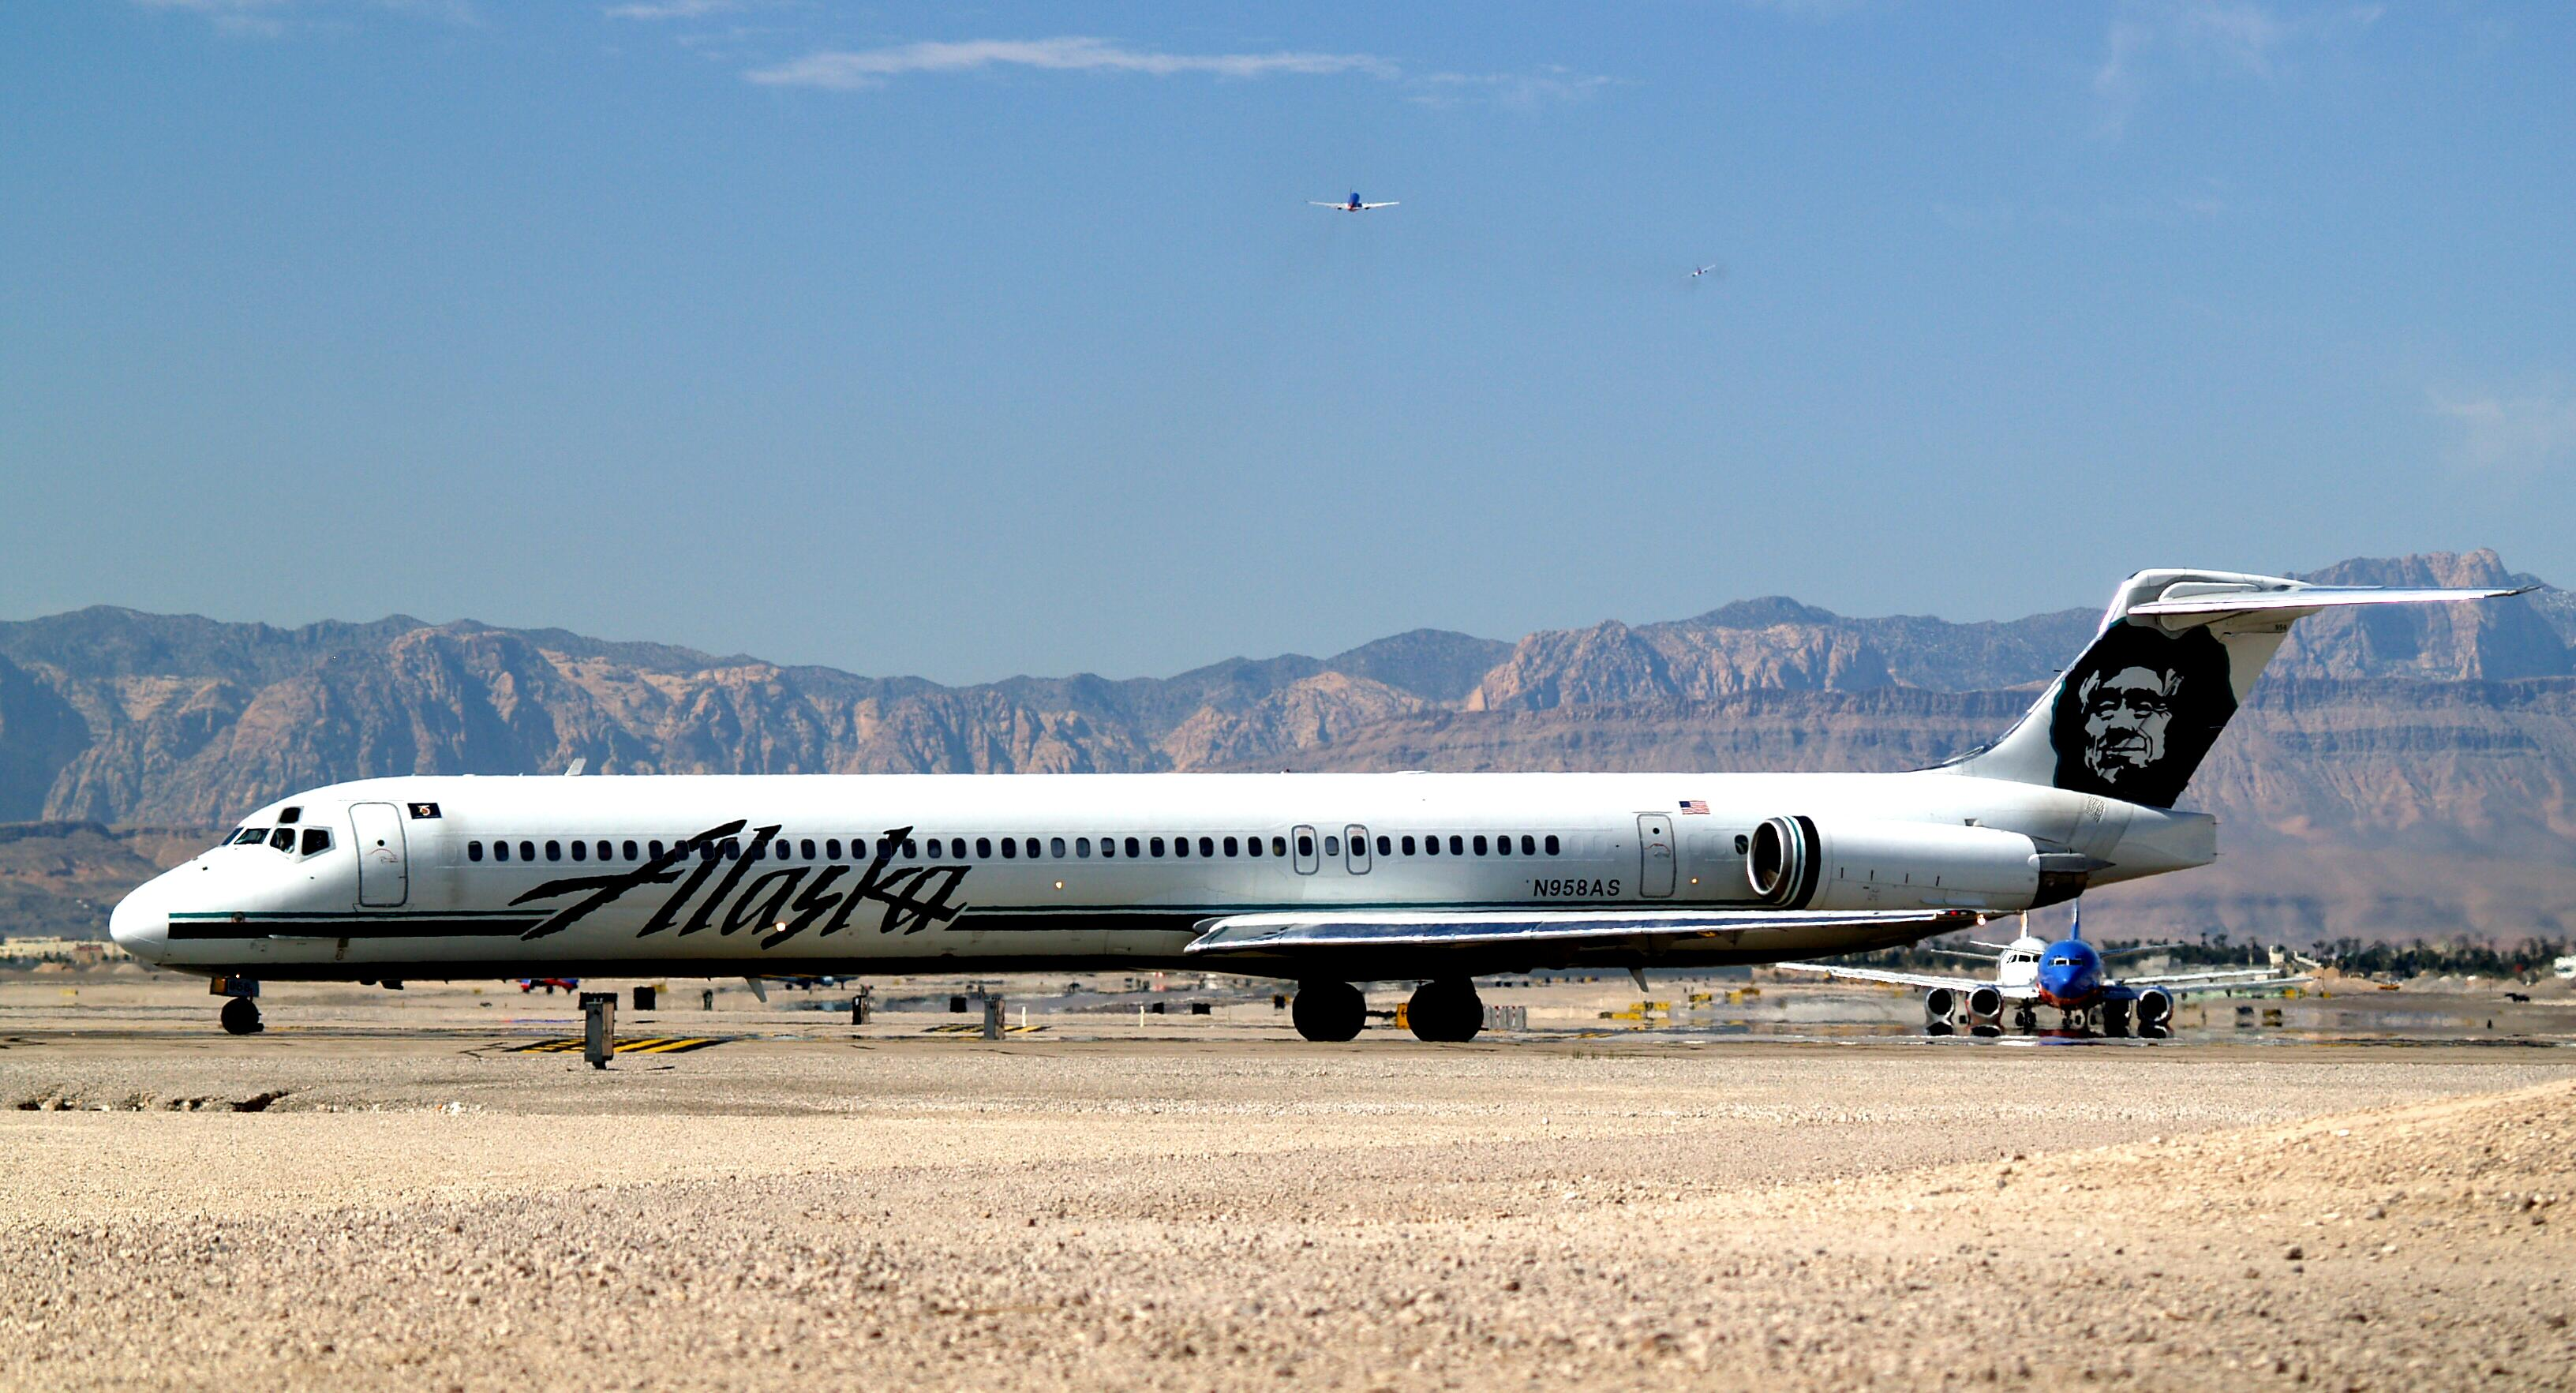 Right side view of an airplane taxiing on the ground towards left side of image.  Another plane is behind it, and in the background are mountains and blue sky with a few clouds.